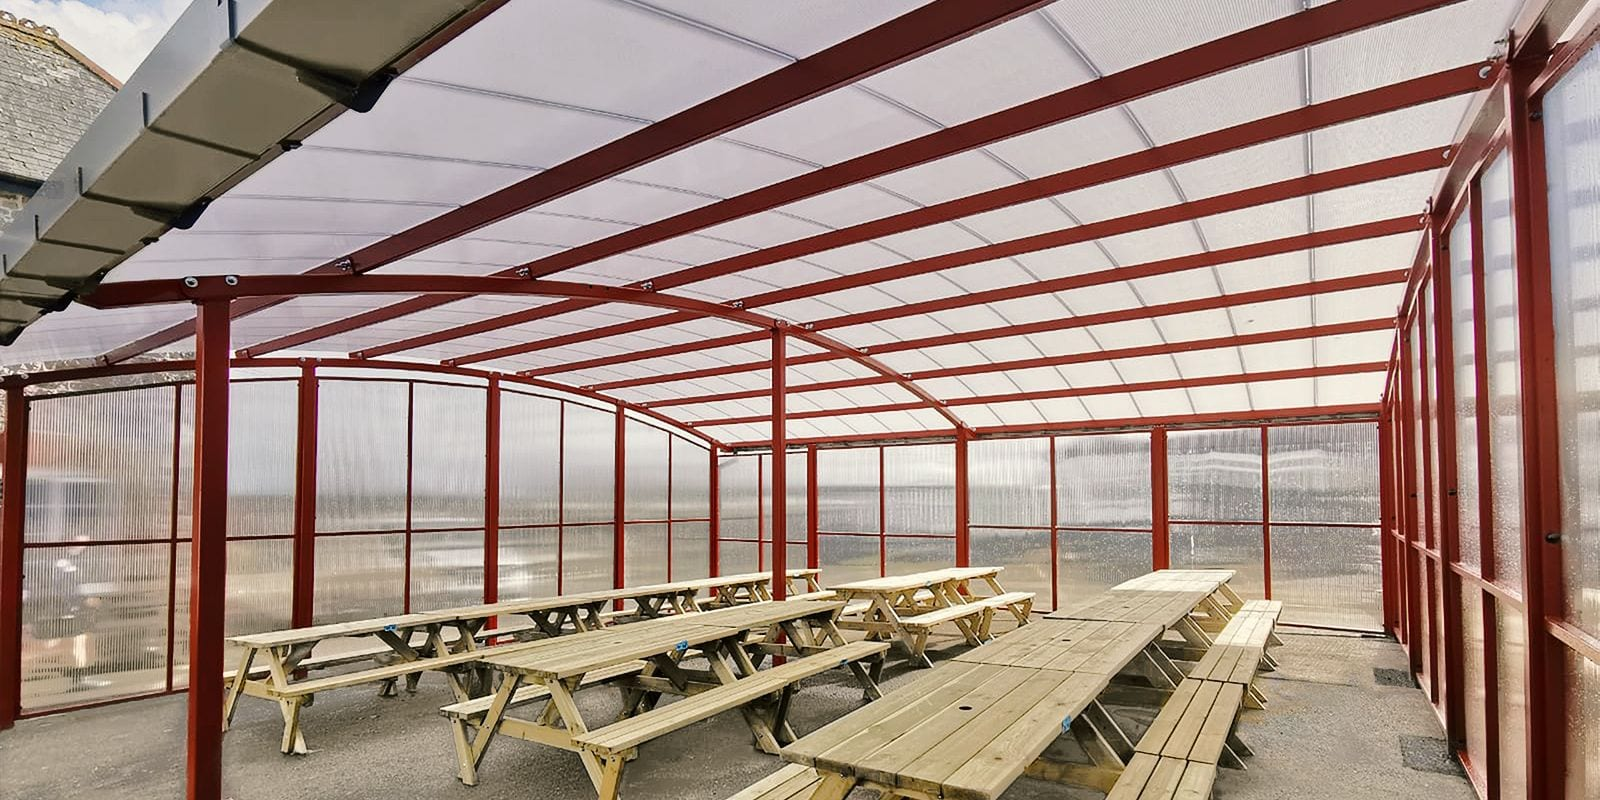 Outdoor dining canopy we designed for Poltair School